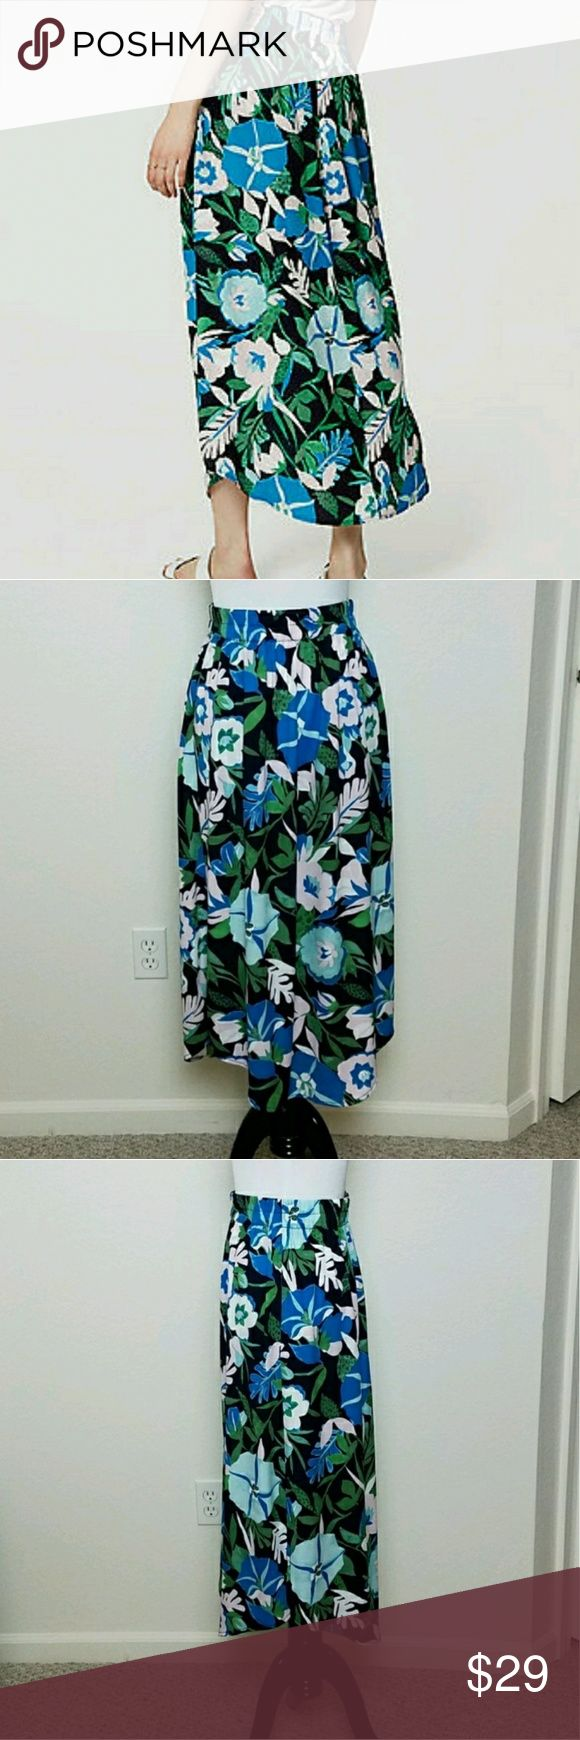 Loft Jungle Floral Long Black Maxi Skirt Loft Jungle Floral Long Maxi Skirt  Size: XS Petite   Light and flowy maxi length skirt with a tropical flower pattern  Elastic waistband, shirt tail hem, side slit pocket, and side slits  Excellent pre-owned condition LOFT Skirts Maxi